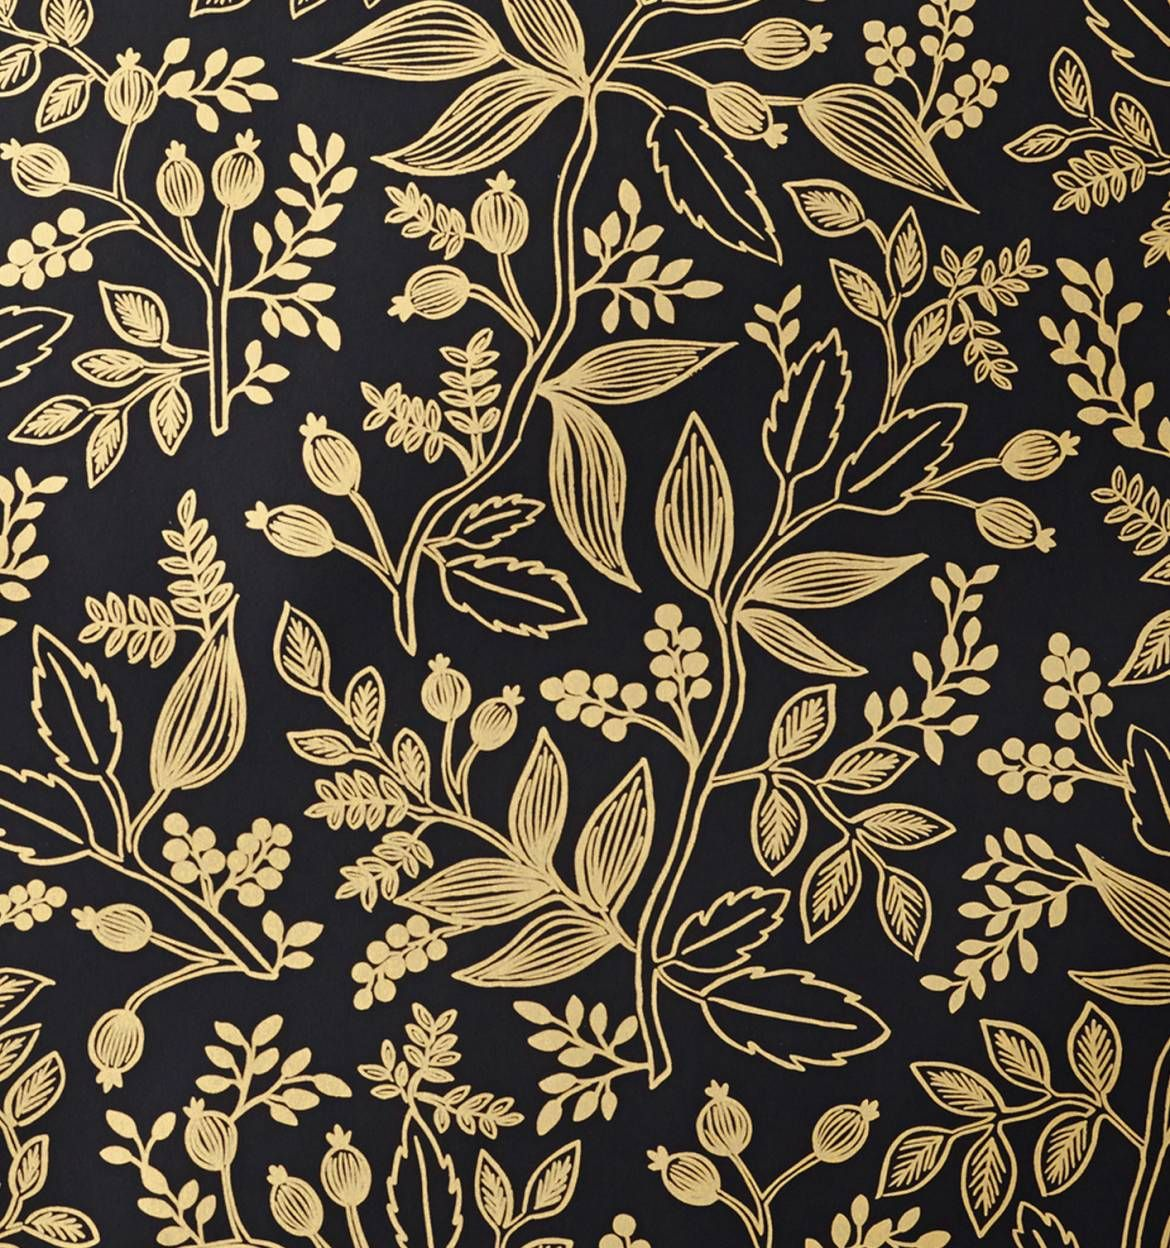 Queen Anne (Ebony) Wallpaper Black floral wallpaper